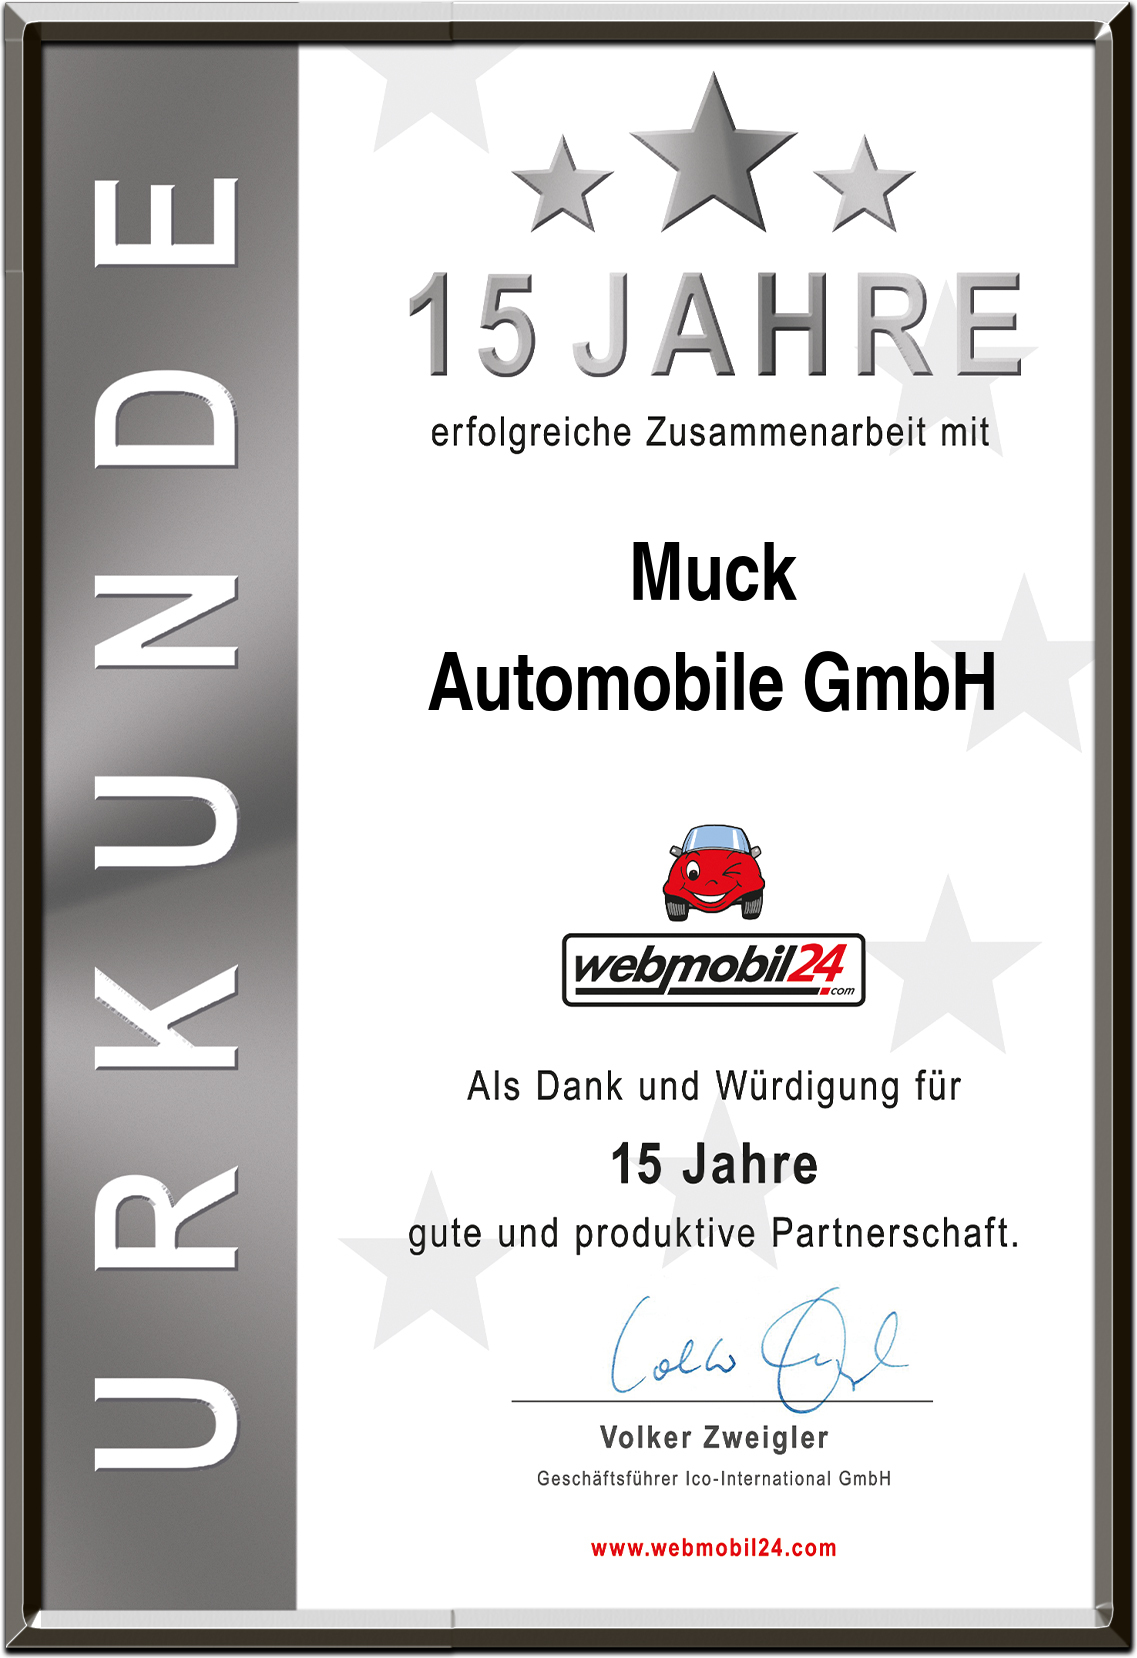 Muck Automobile GmbH